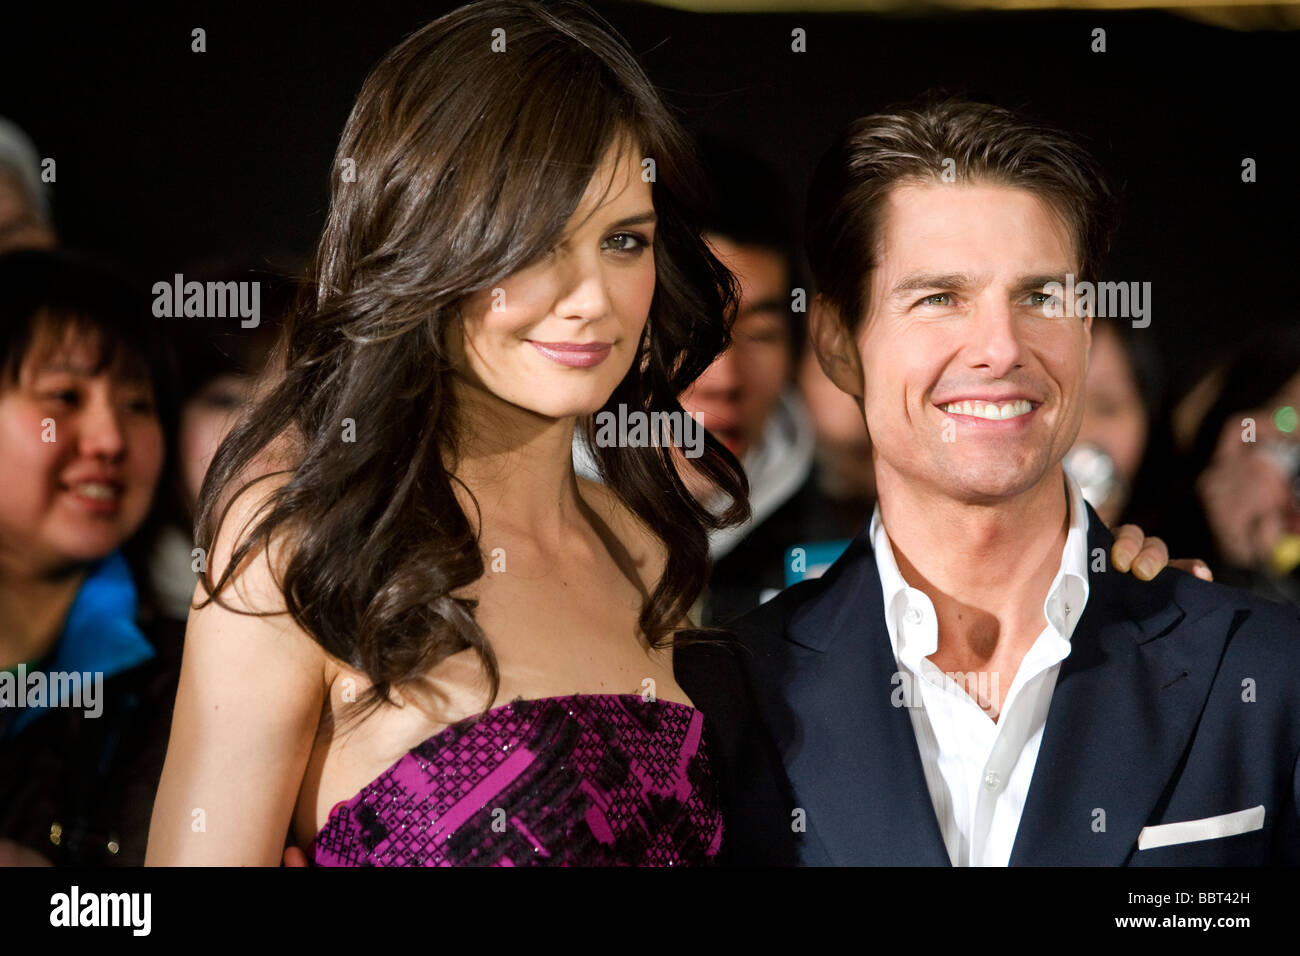 Hollywood star actor Tom Cruise, at red carpet premiere of movie. - Stock Image